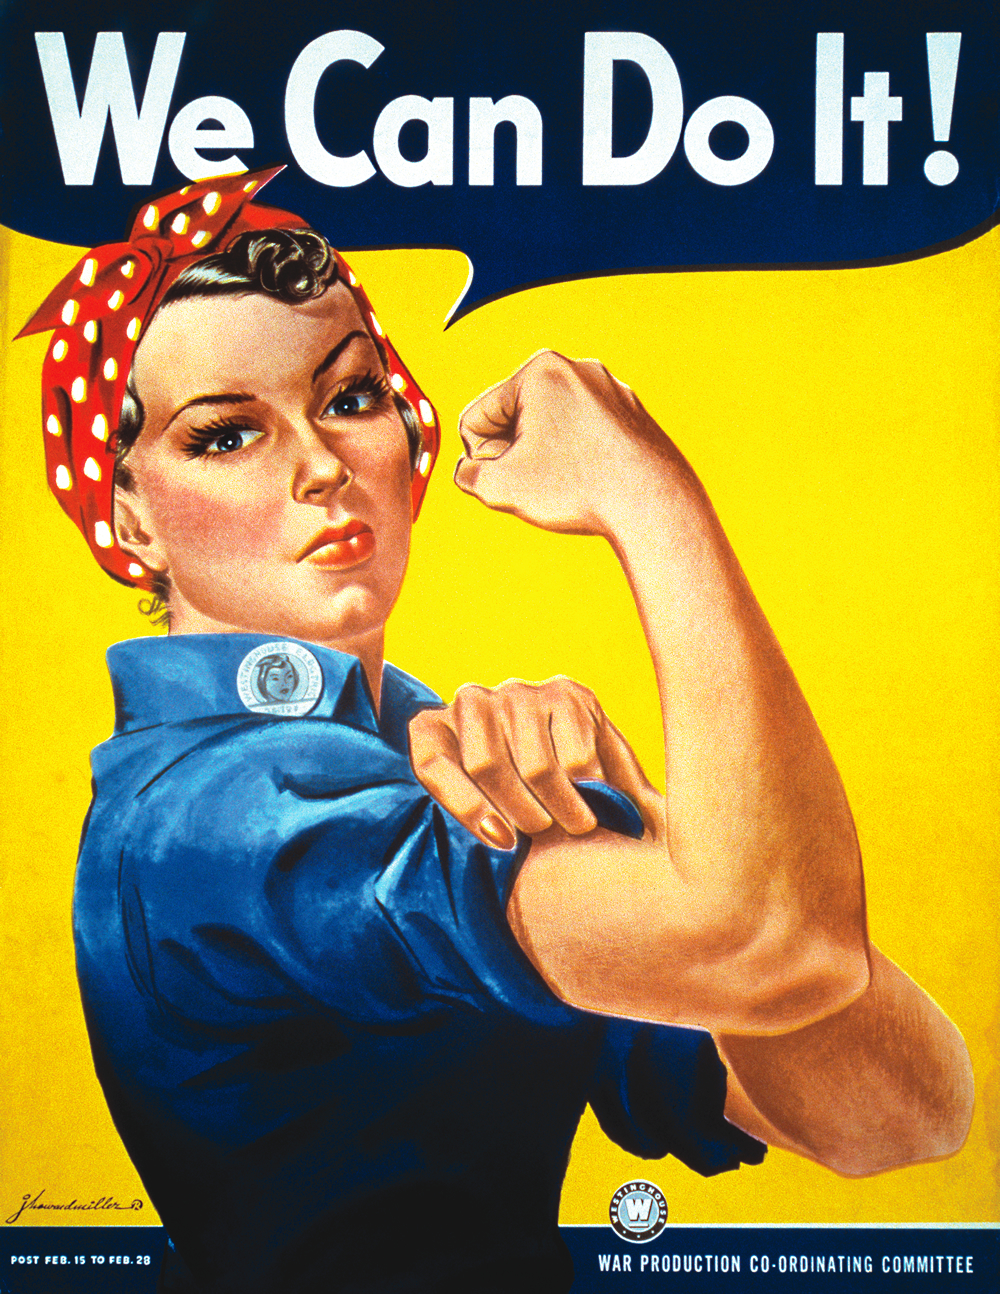 We_Can_Do_It! rosie the riveter